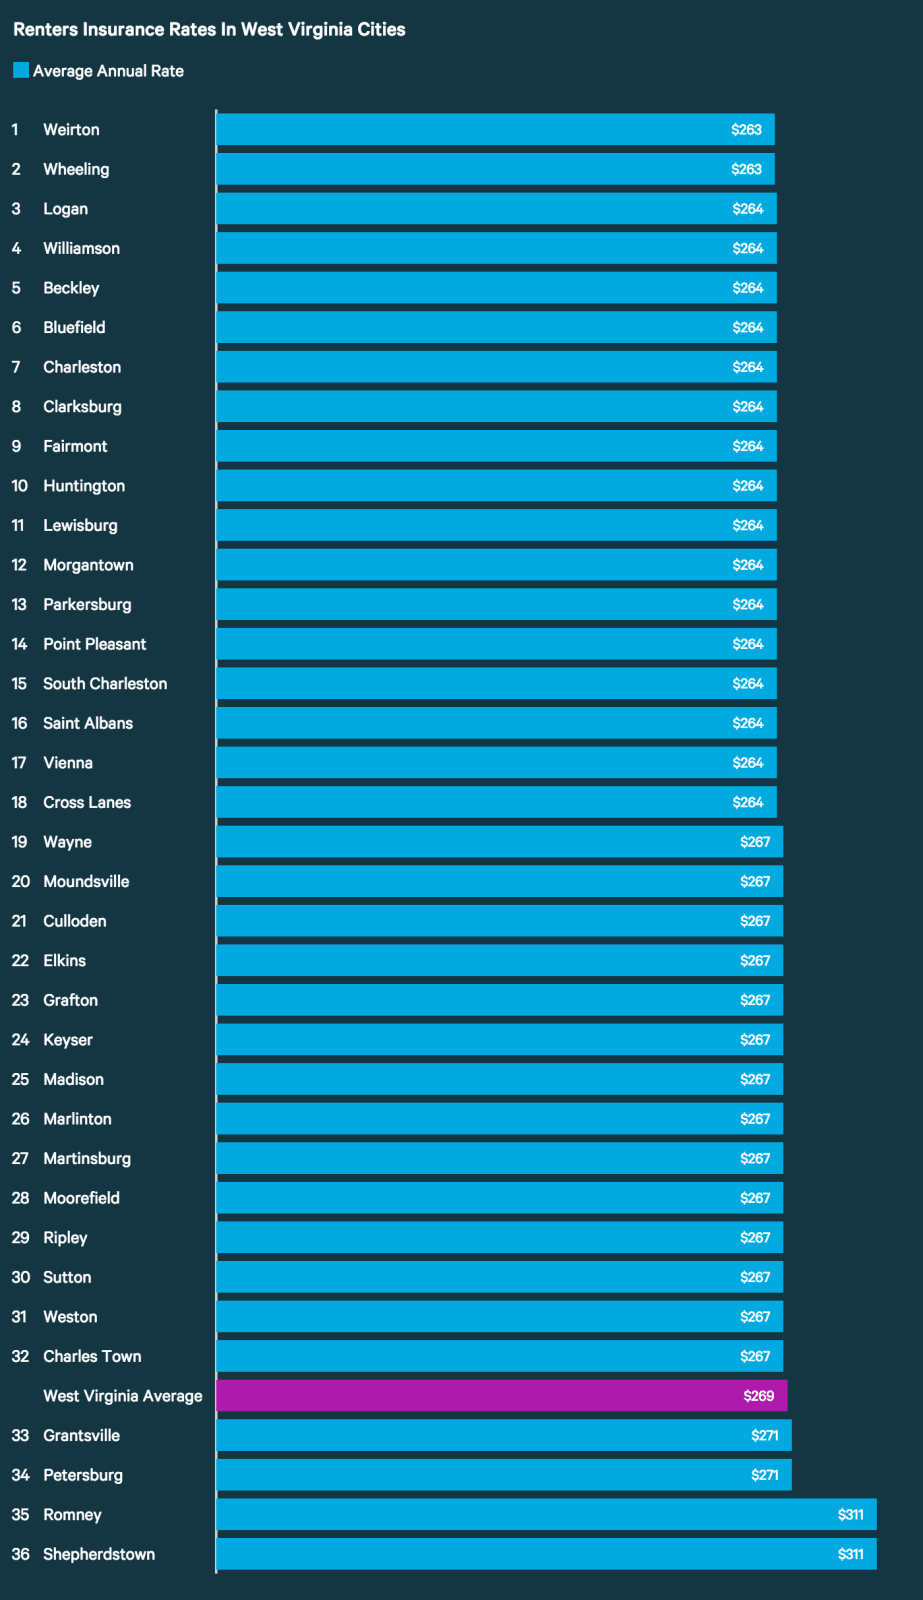 Renters Insurance Rates in West Virginia Cities